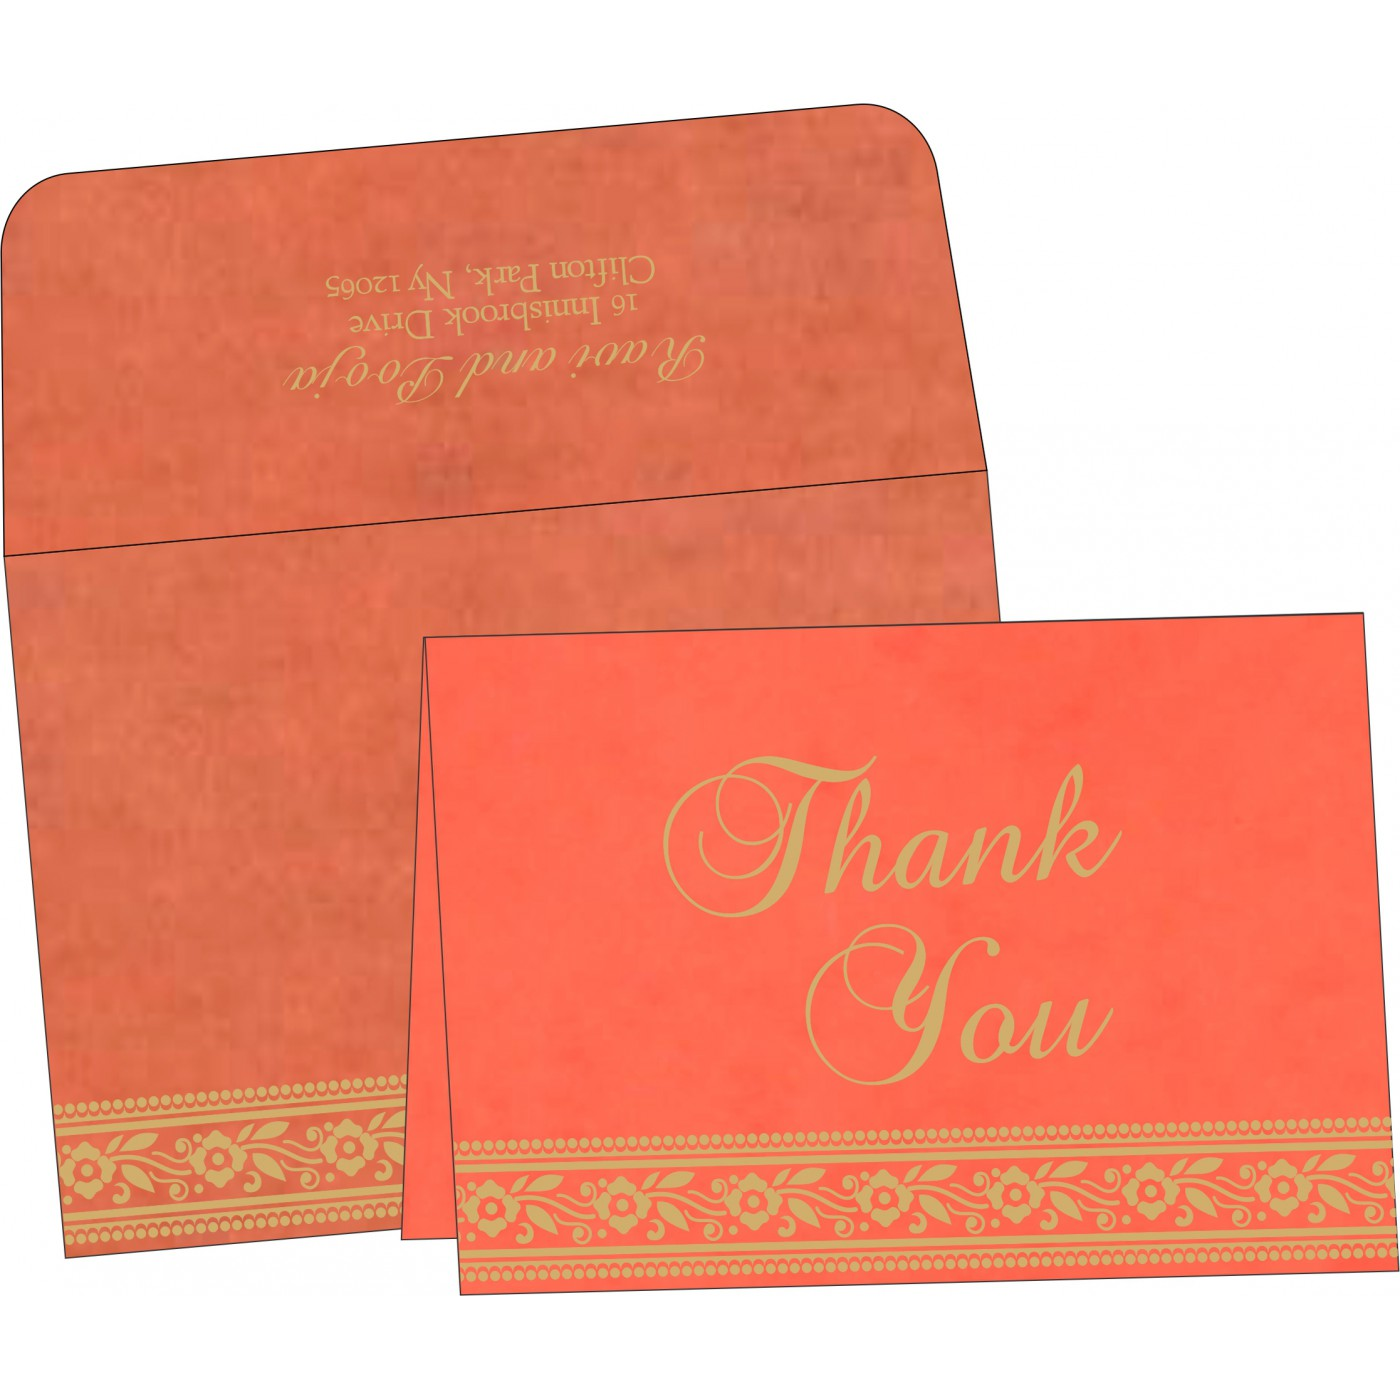 Thank You Cards - TYC-8220N